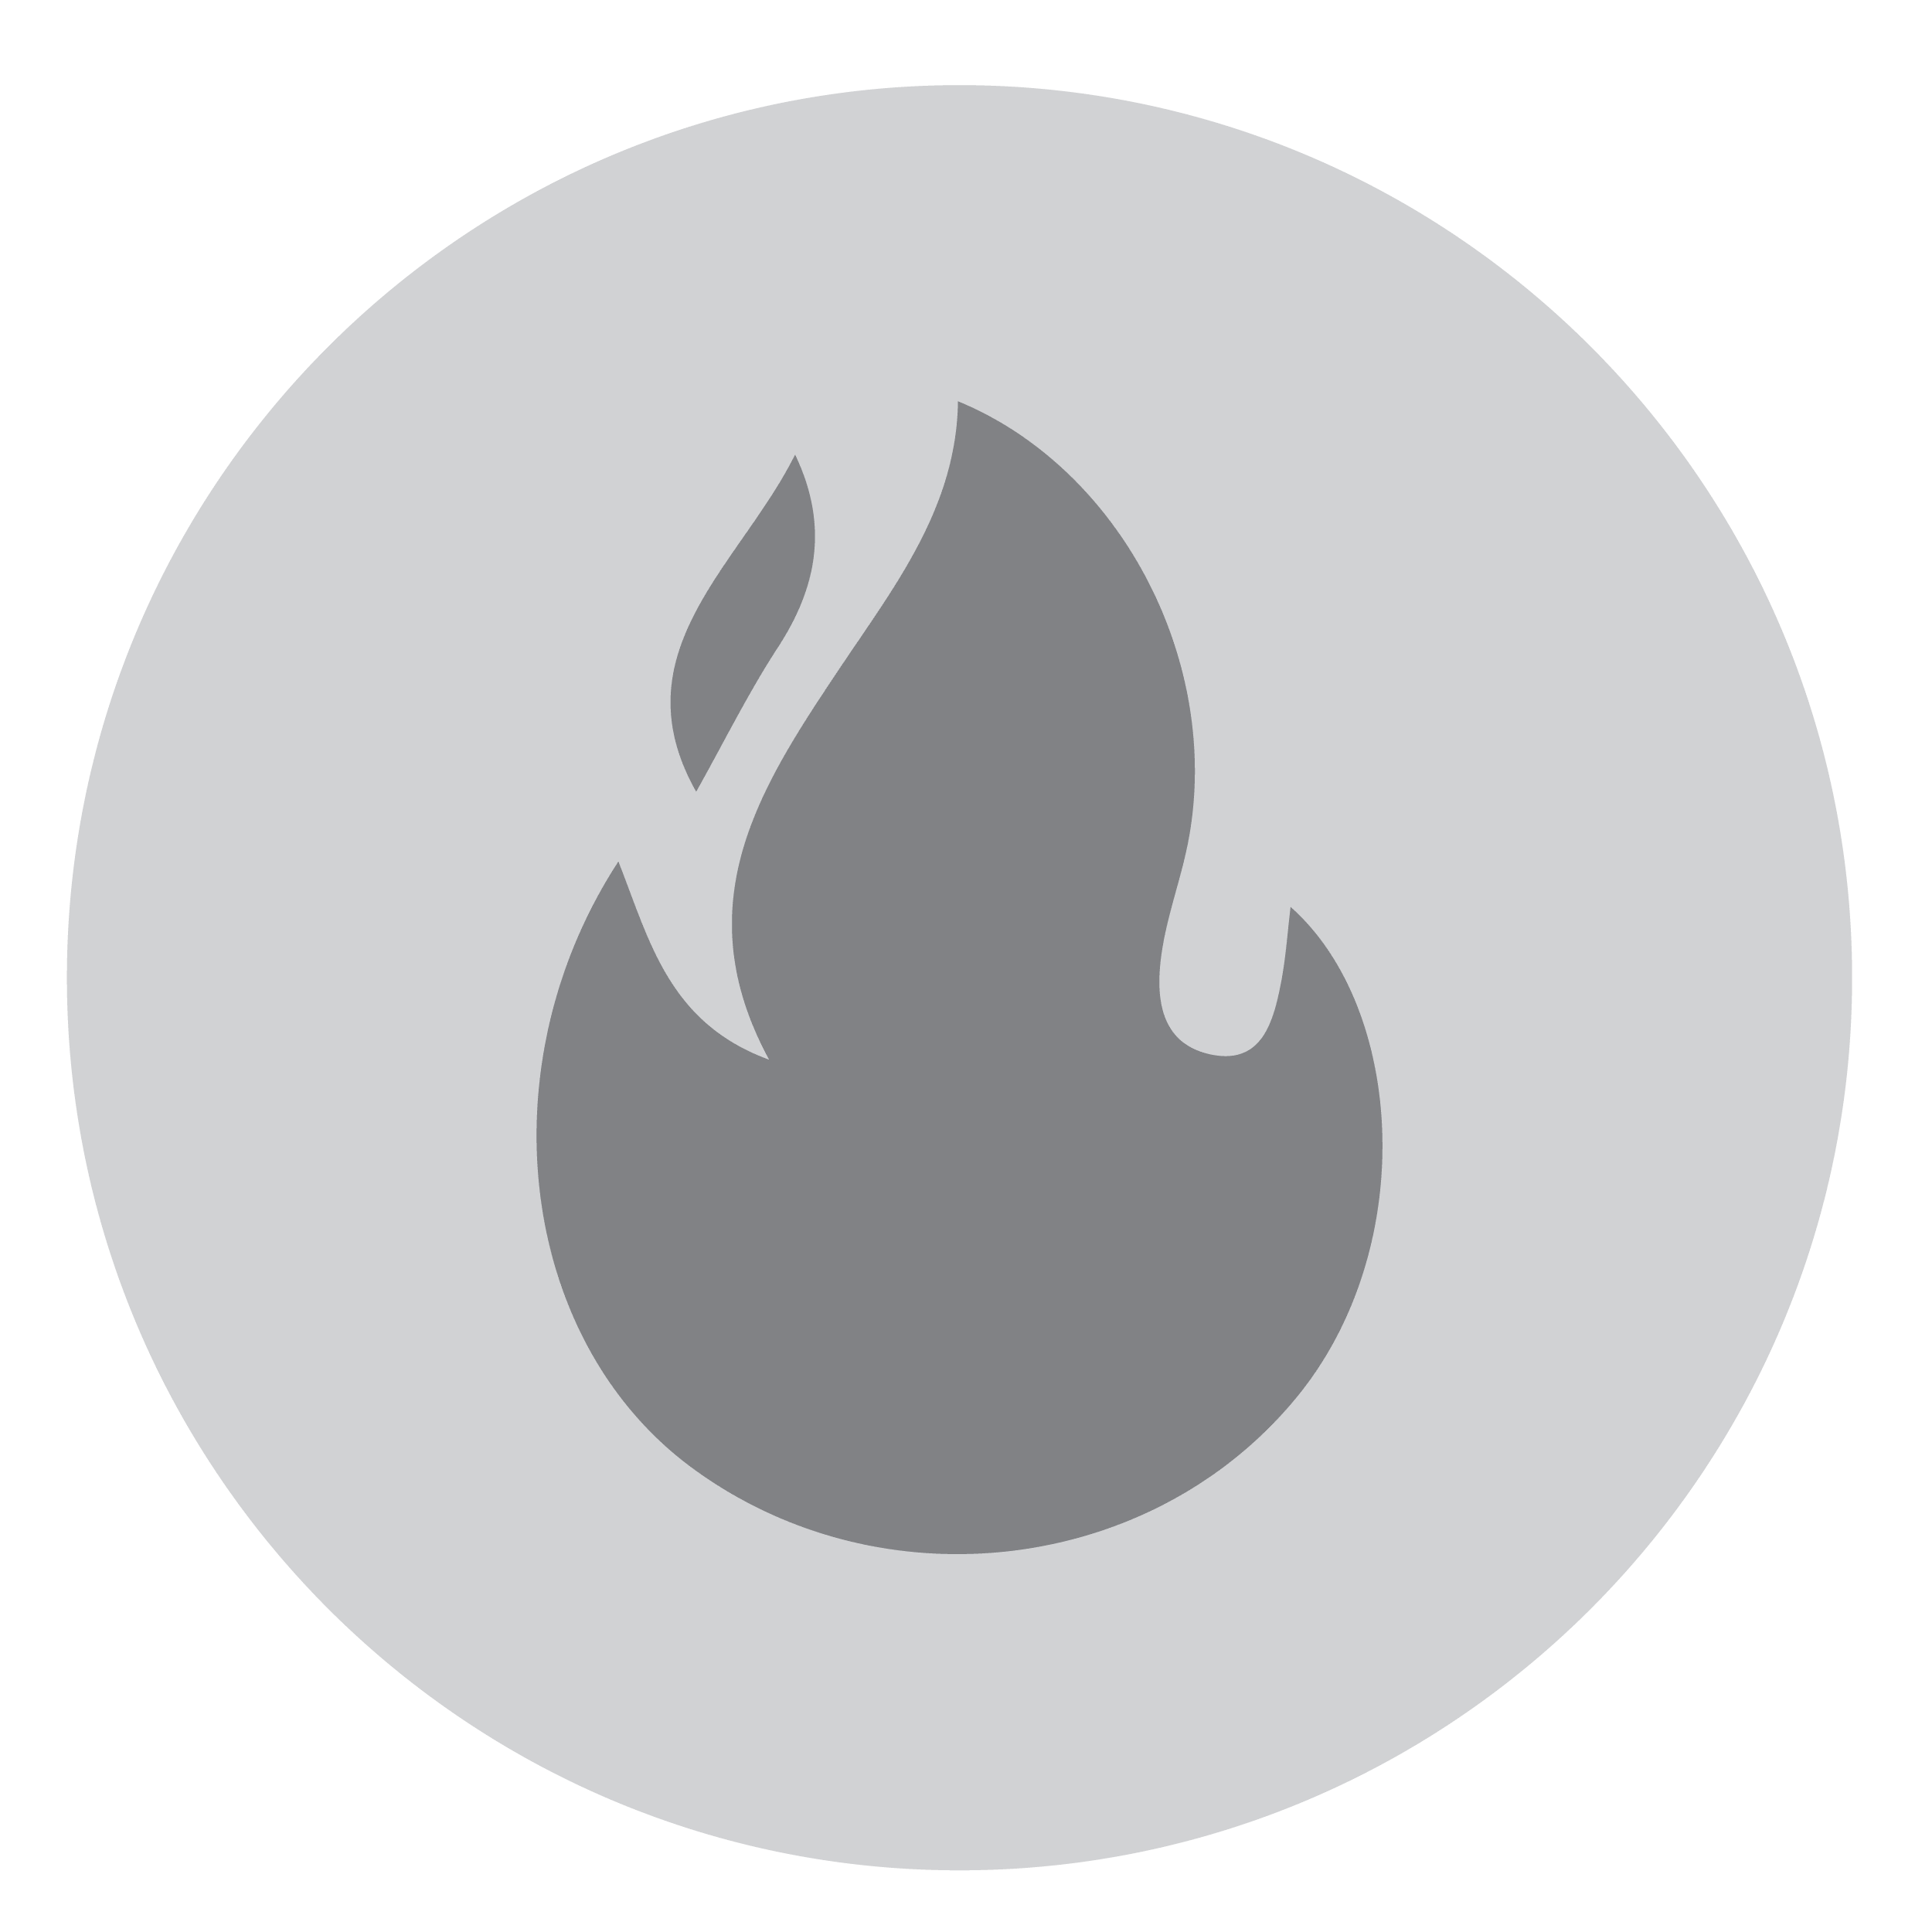 Fireproof: class A1 certificate, non-combustible  ASTM E84-19b / UL 723 certified (flame spread FSI=5 and smoke-developed index SDI=5)